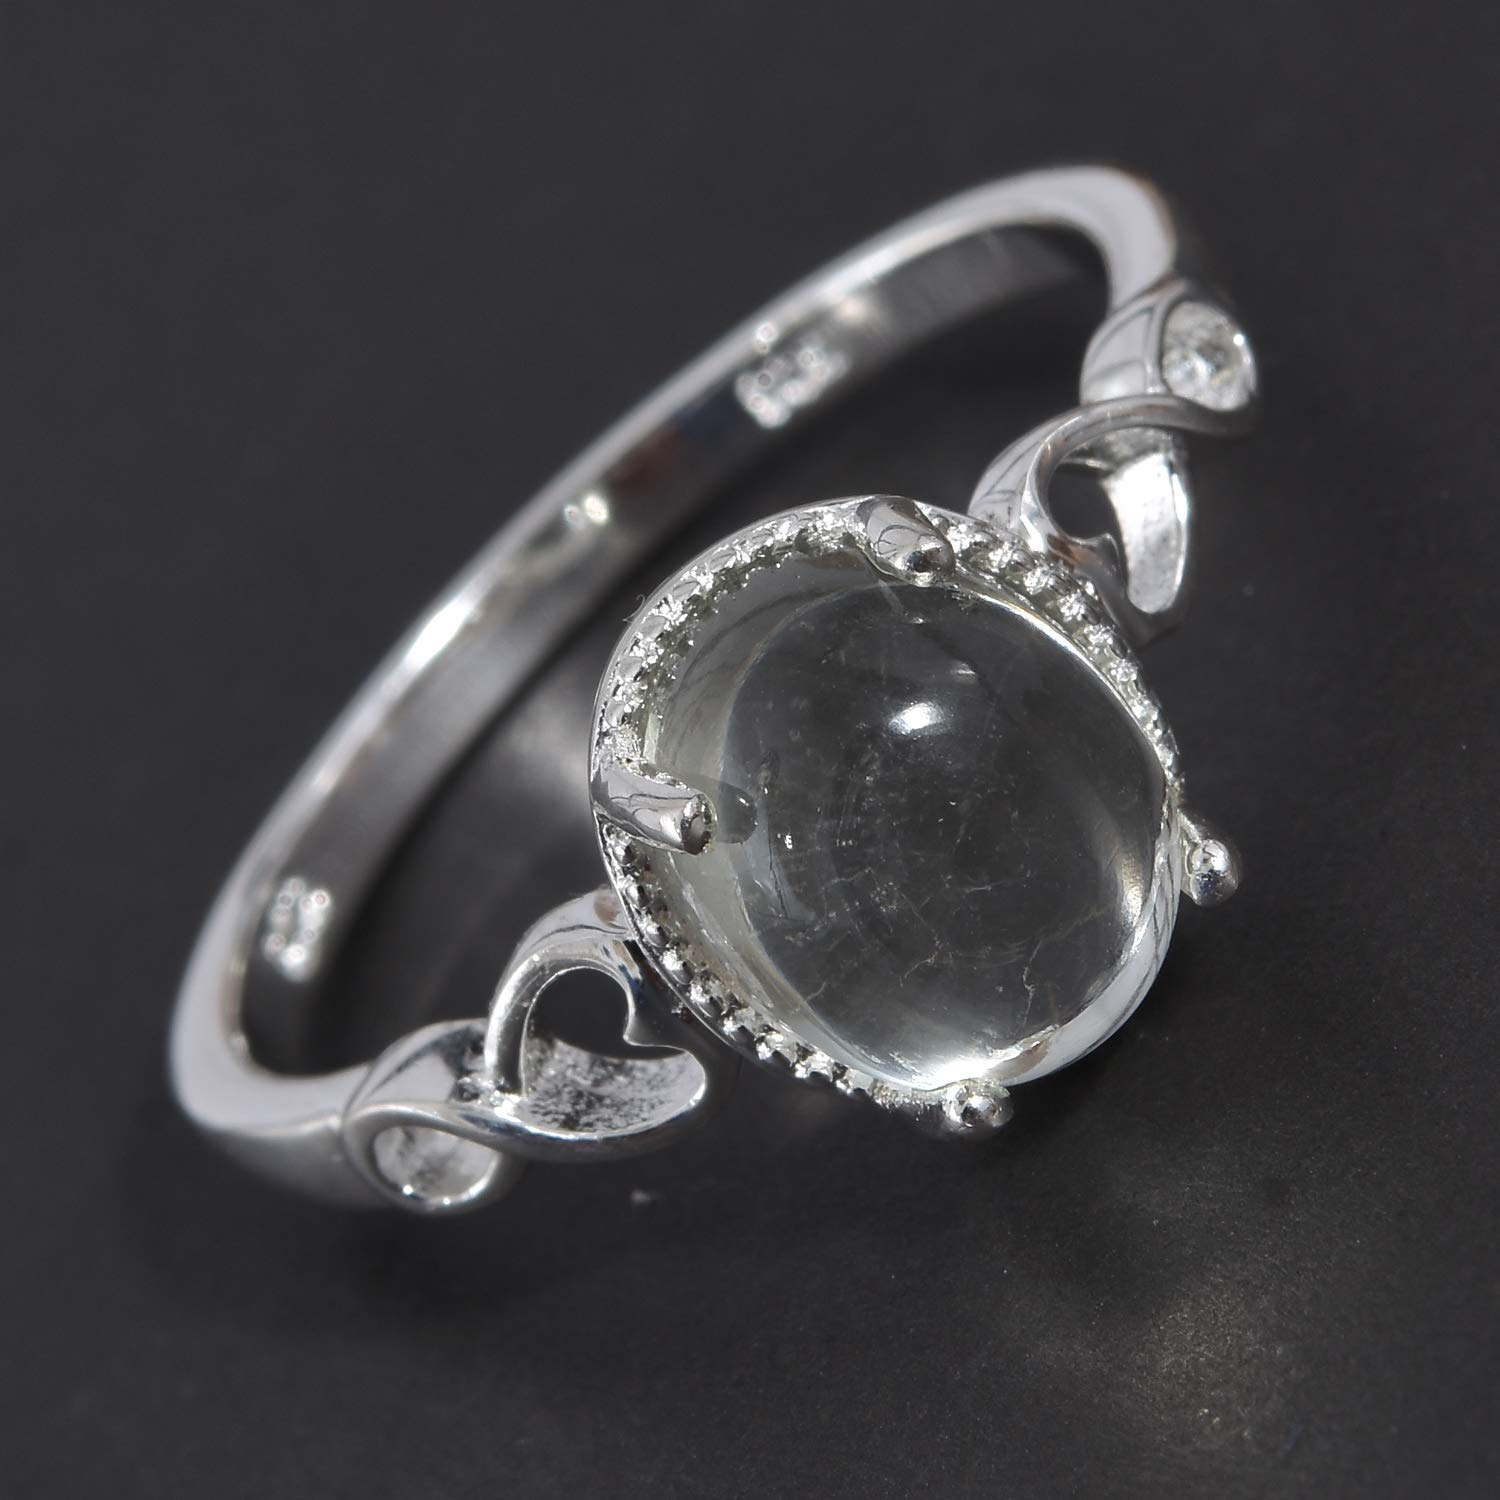 Solitaire Ring 925 Sterling Silver Oval Green Amethyst Gift Jewelry for Women Size 8